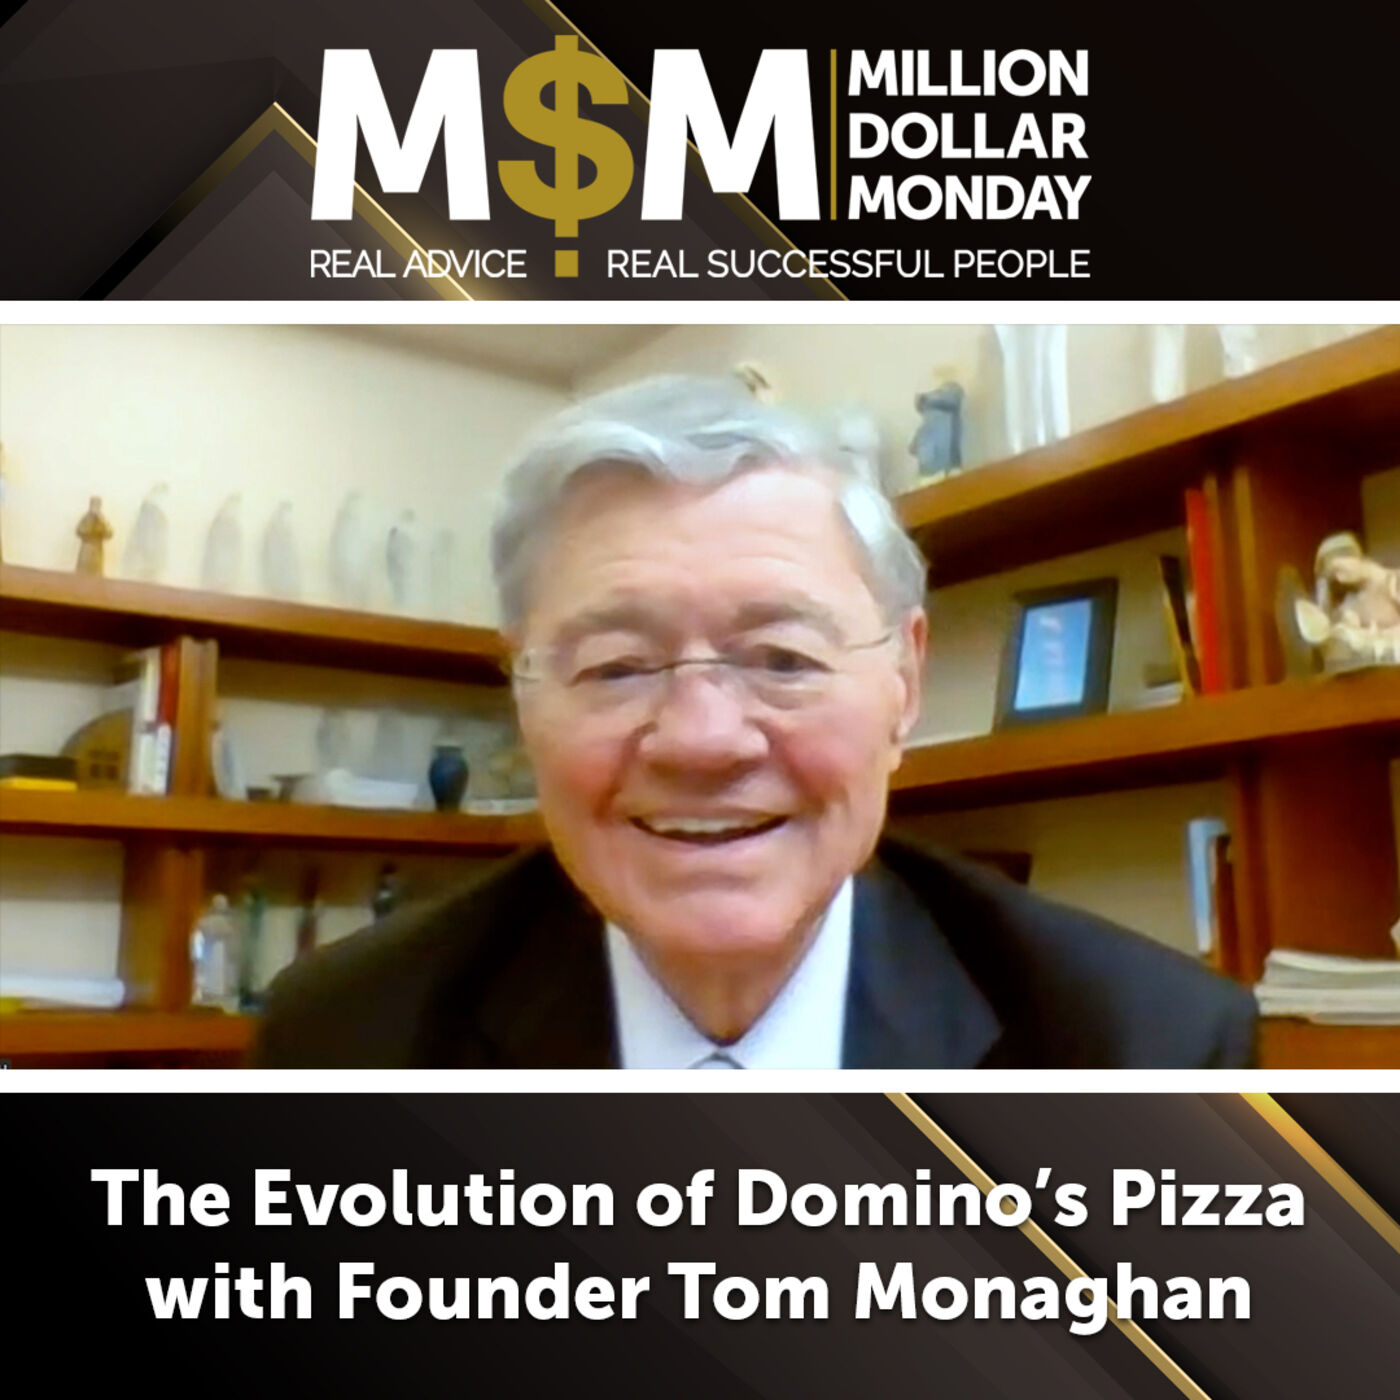 The Evolution of Domino's Pizza with Founder Tom Monaghan